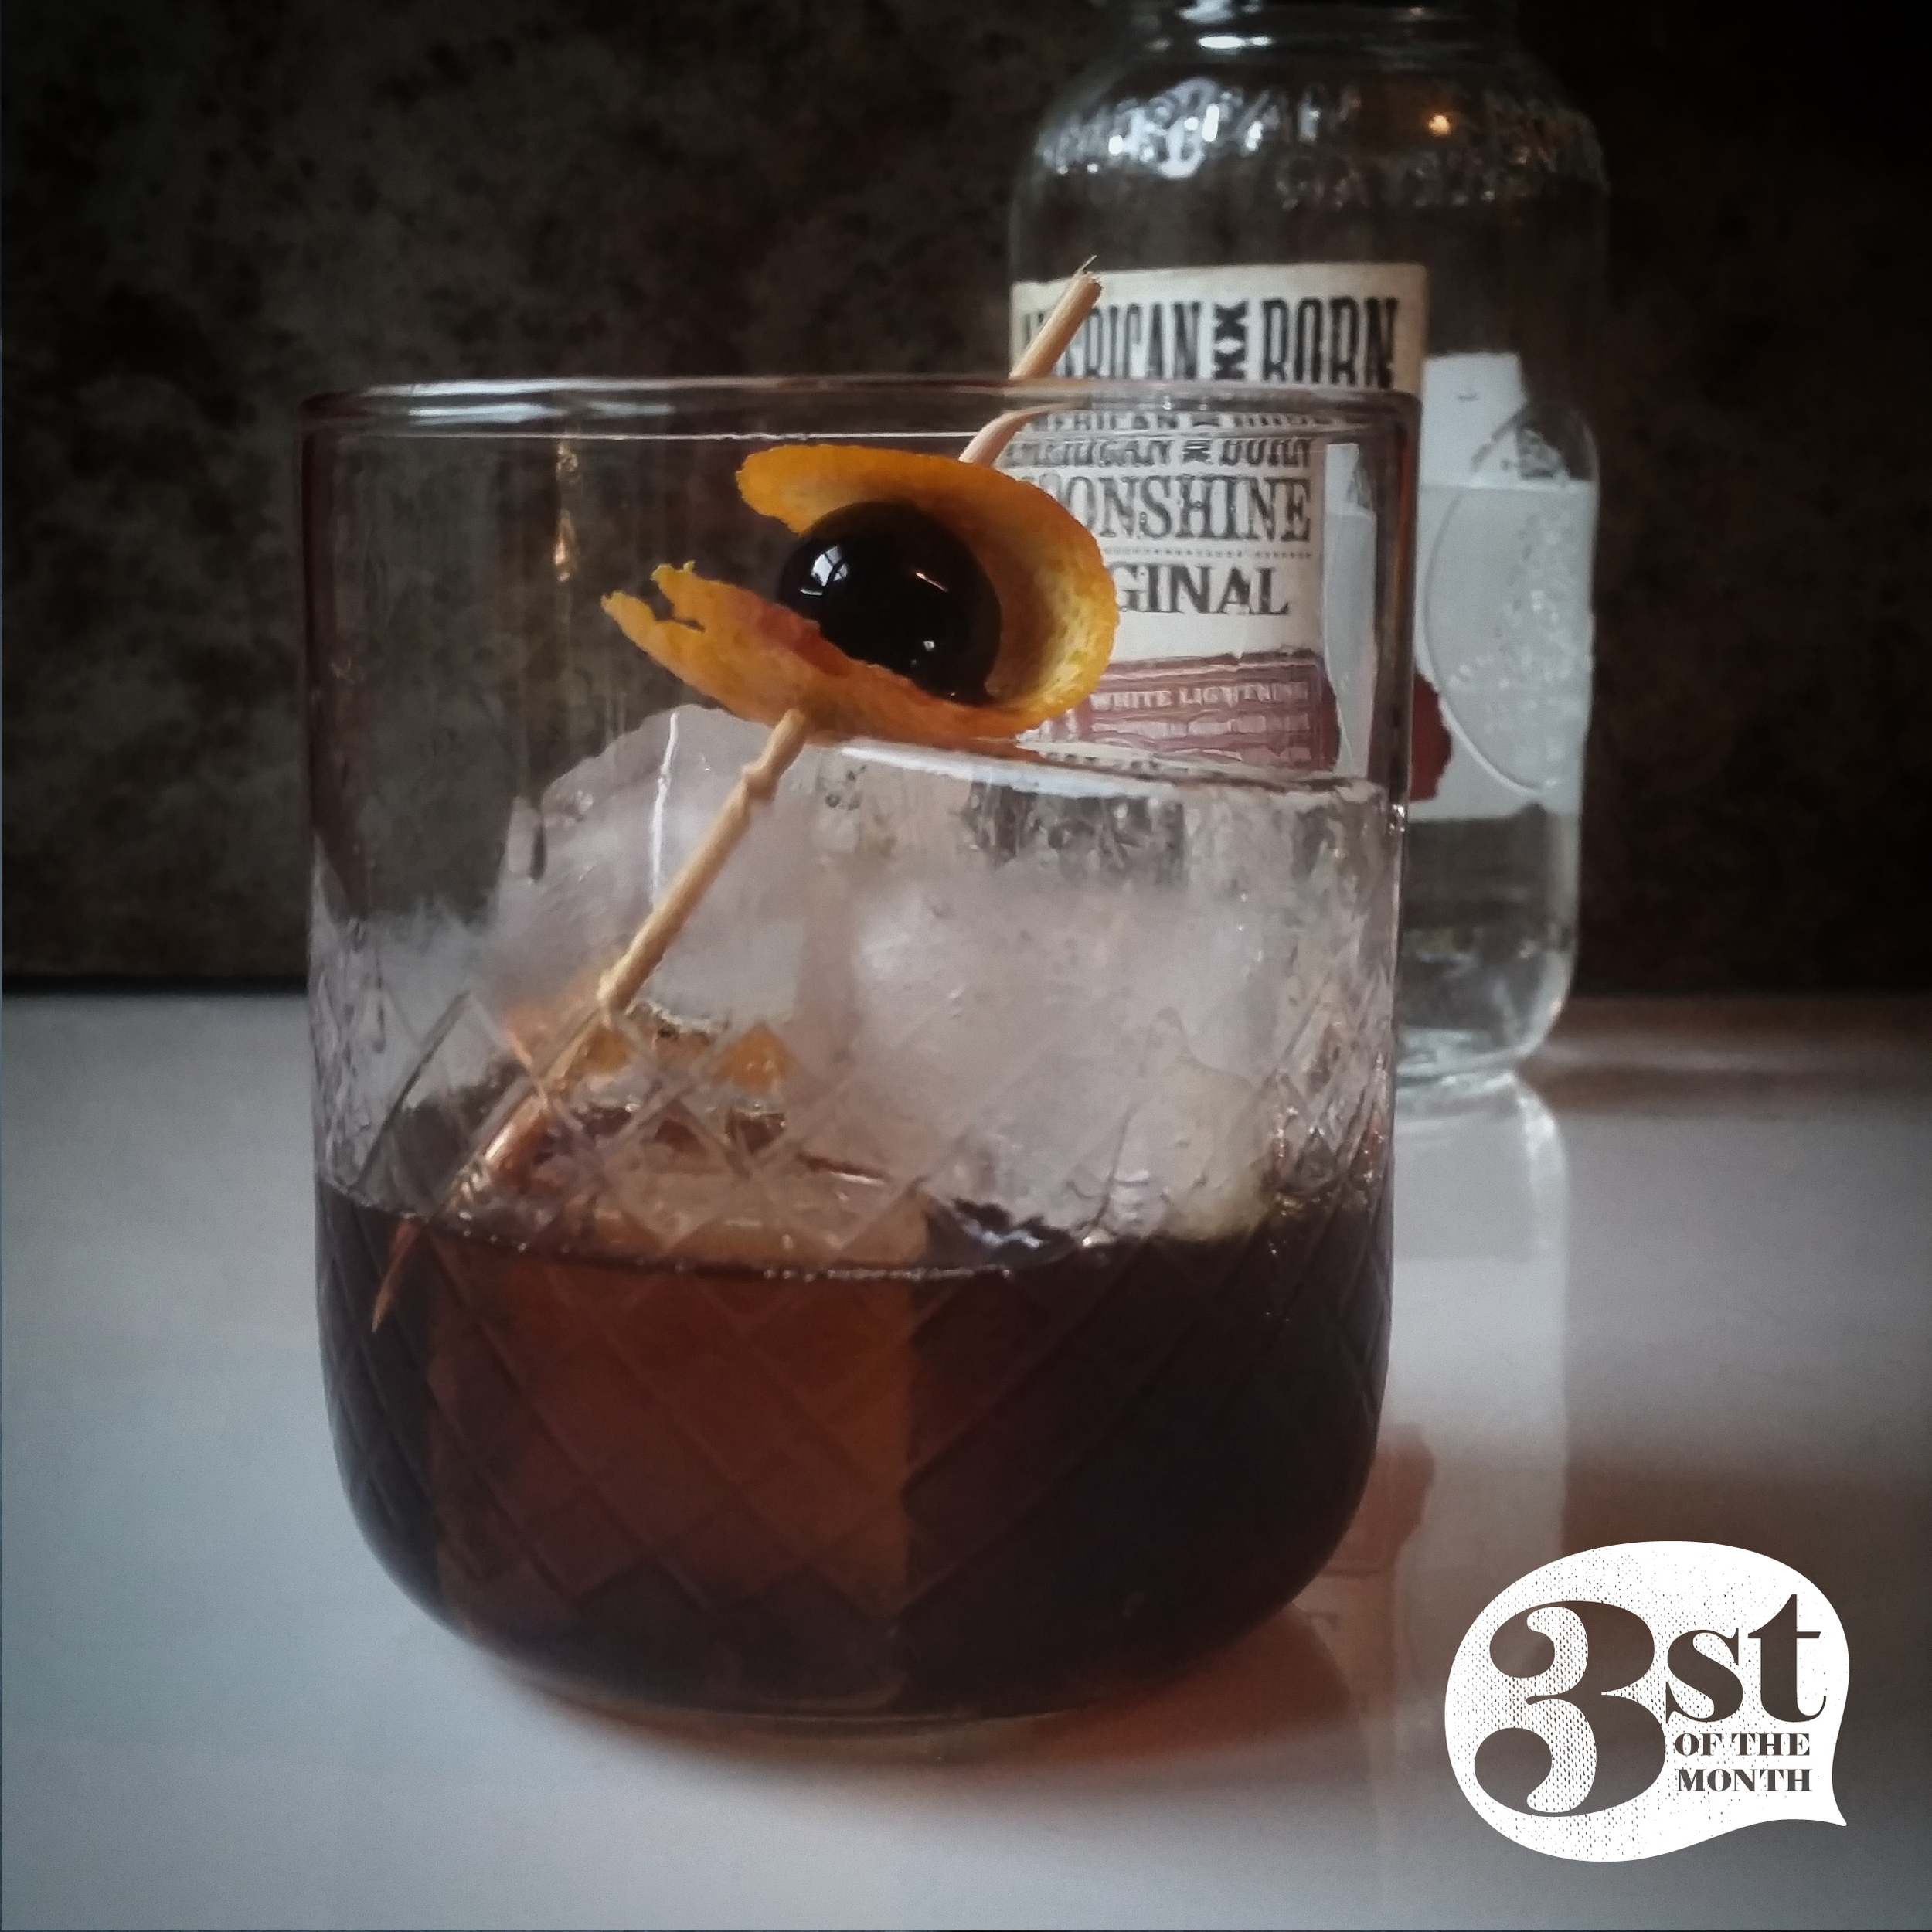 Man on the Moon: a moonshine cocktail from 3st of the Month